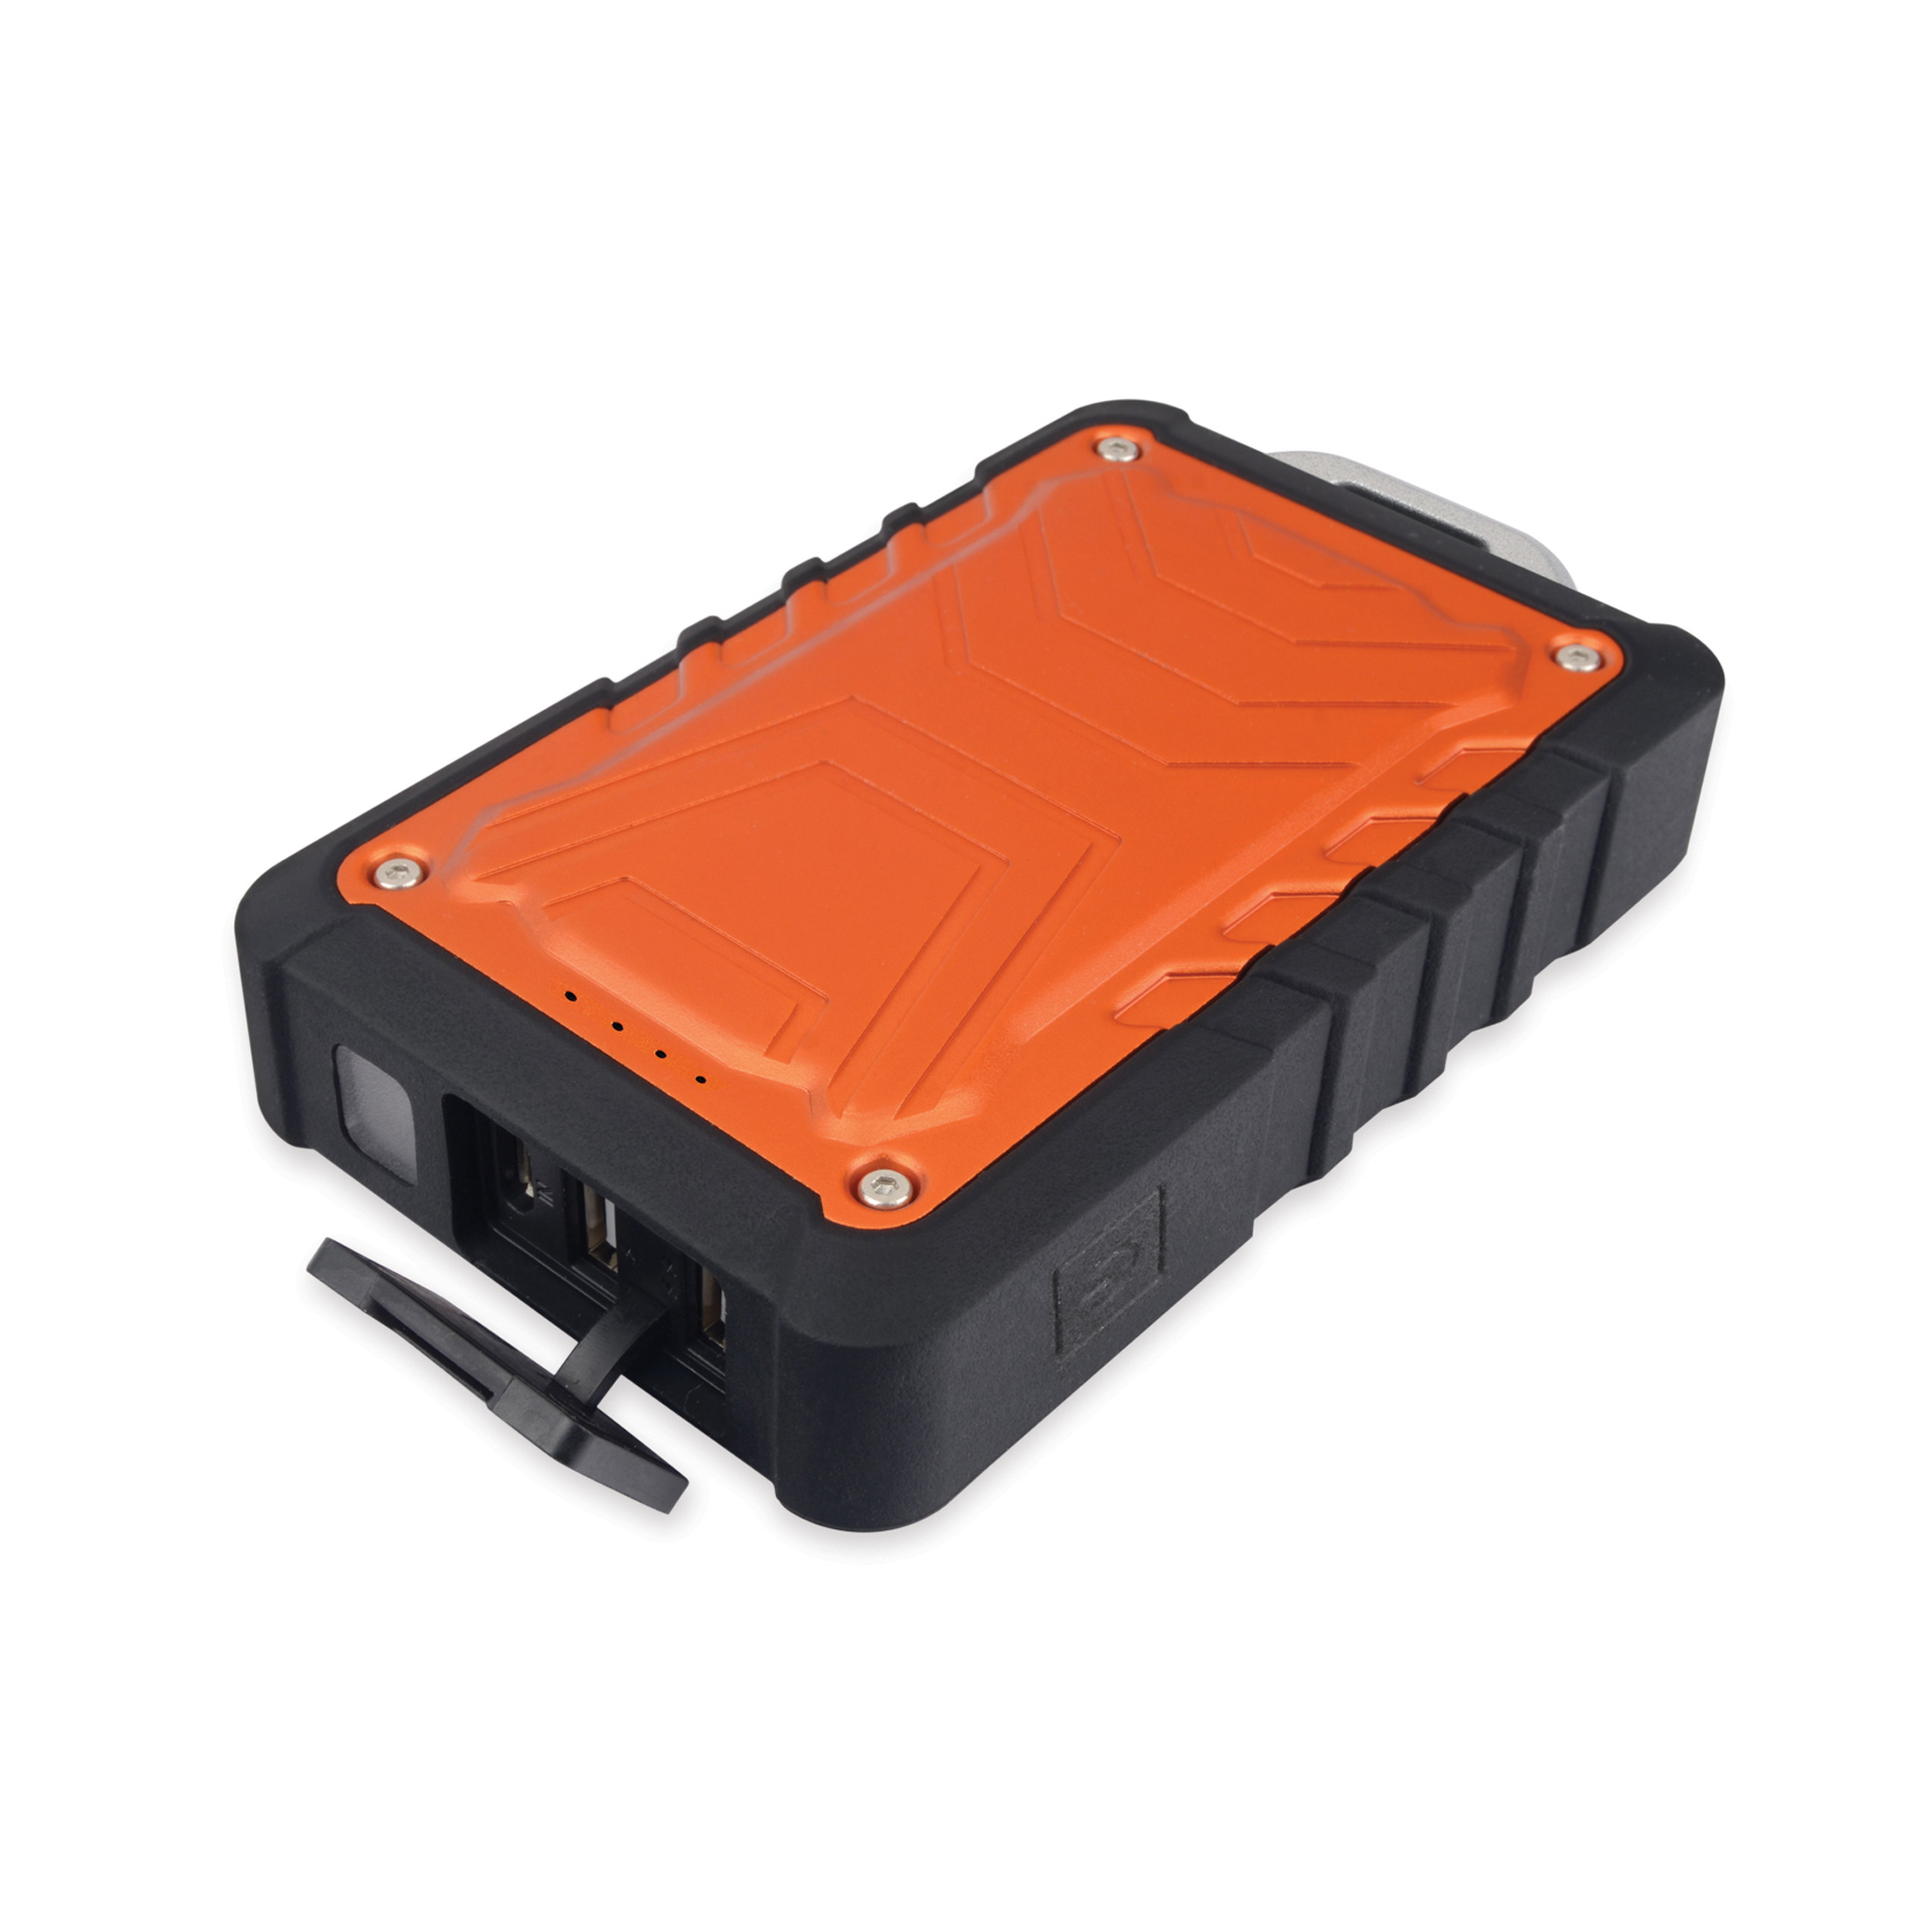 Rugged Weatherproof 8000 mAh Dual USB Battery Pack Charger